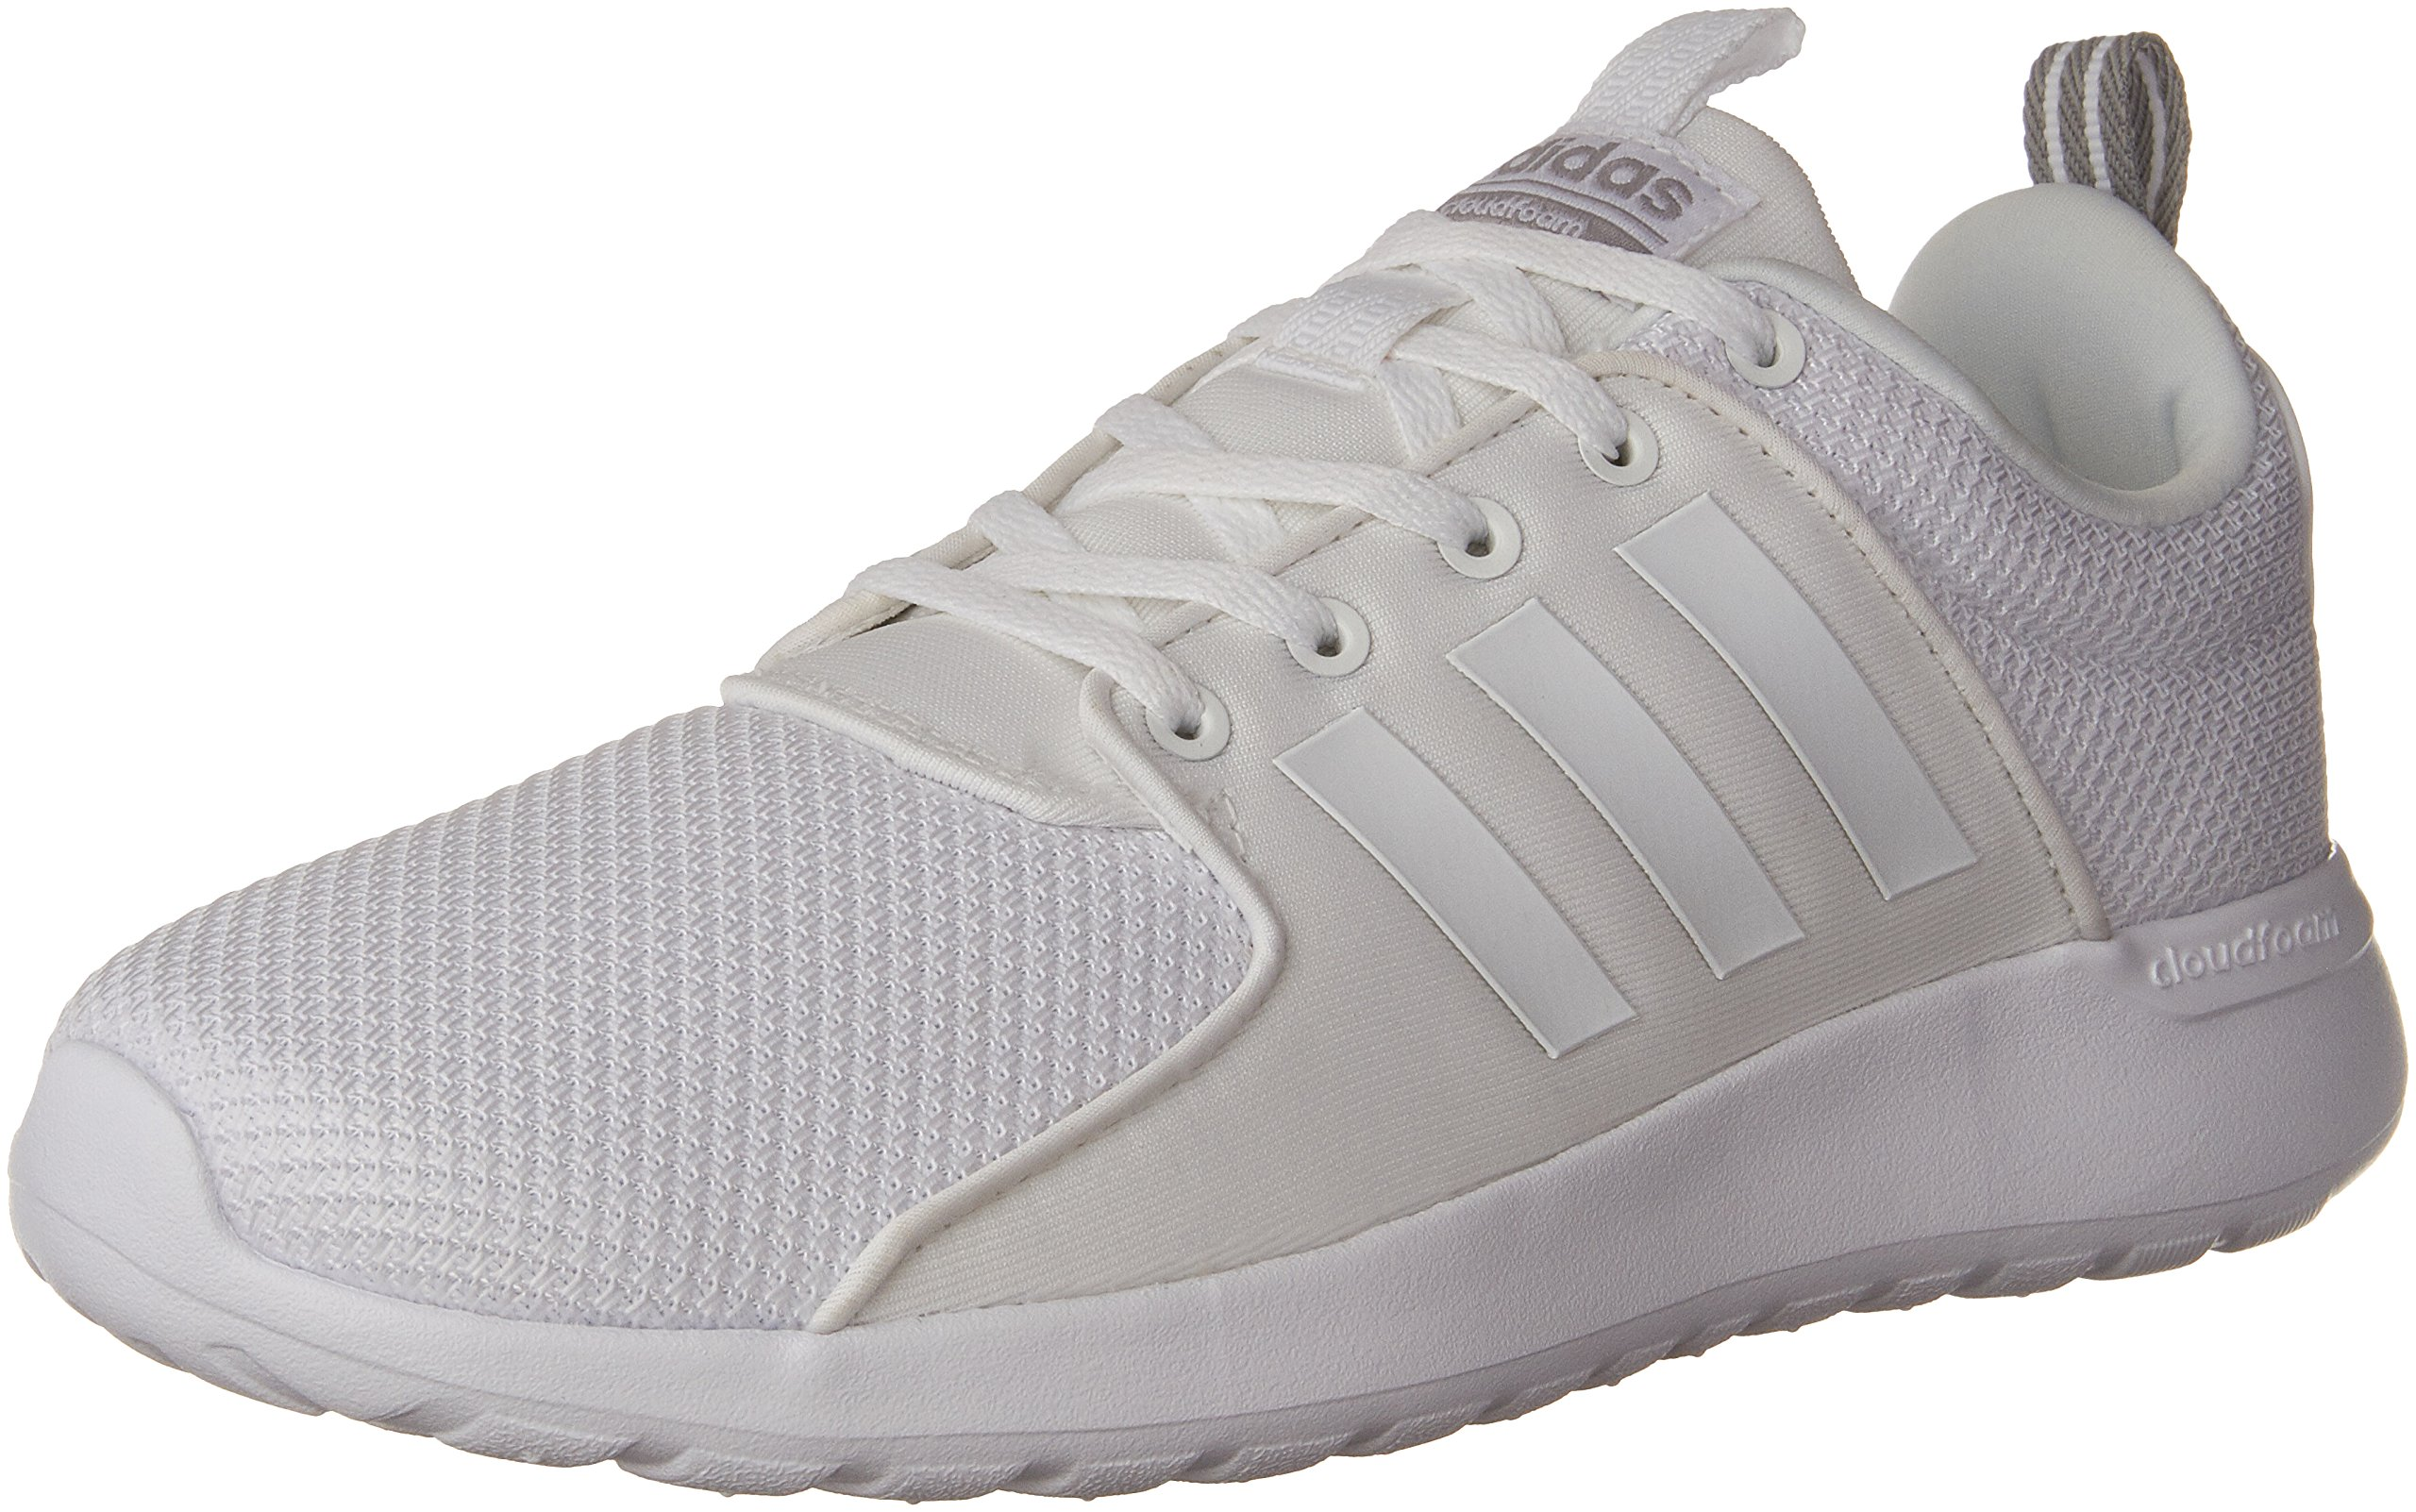 info for 8f531 b8f56 Galleon - Adidas Men s CF Lite Racer Running Shoe, White Clear Onix, 11 M US